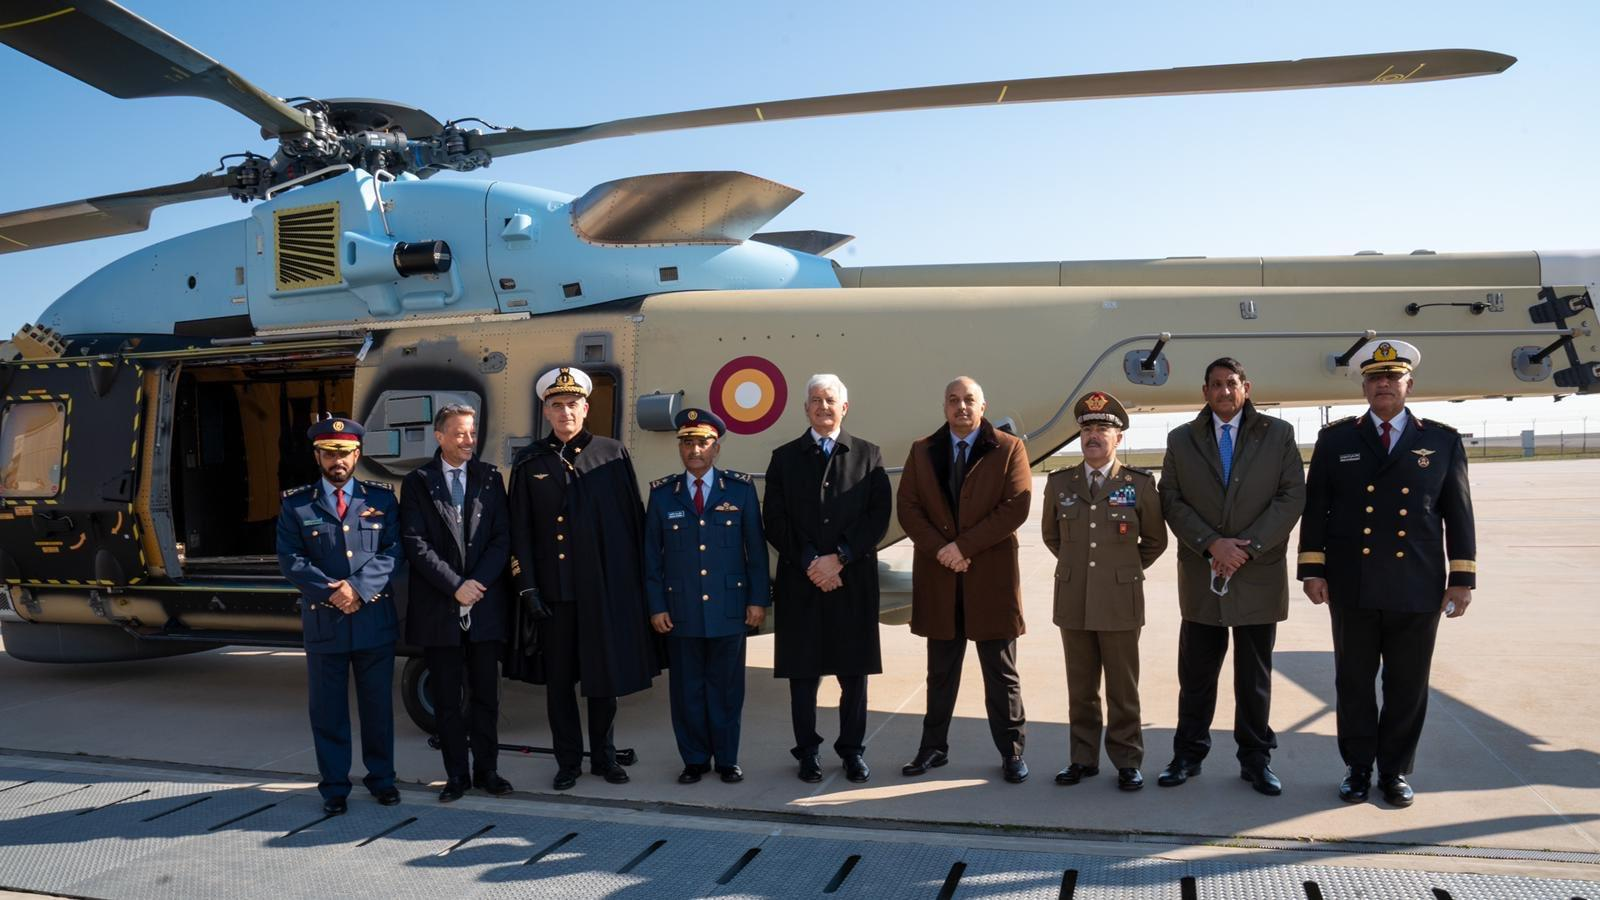 Qatar's Defense Minister inaugurates NH90 helicopter in Italy